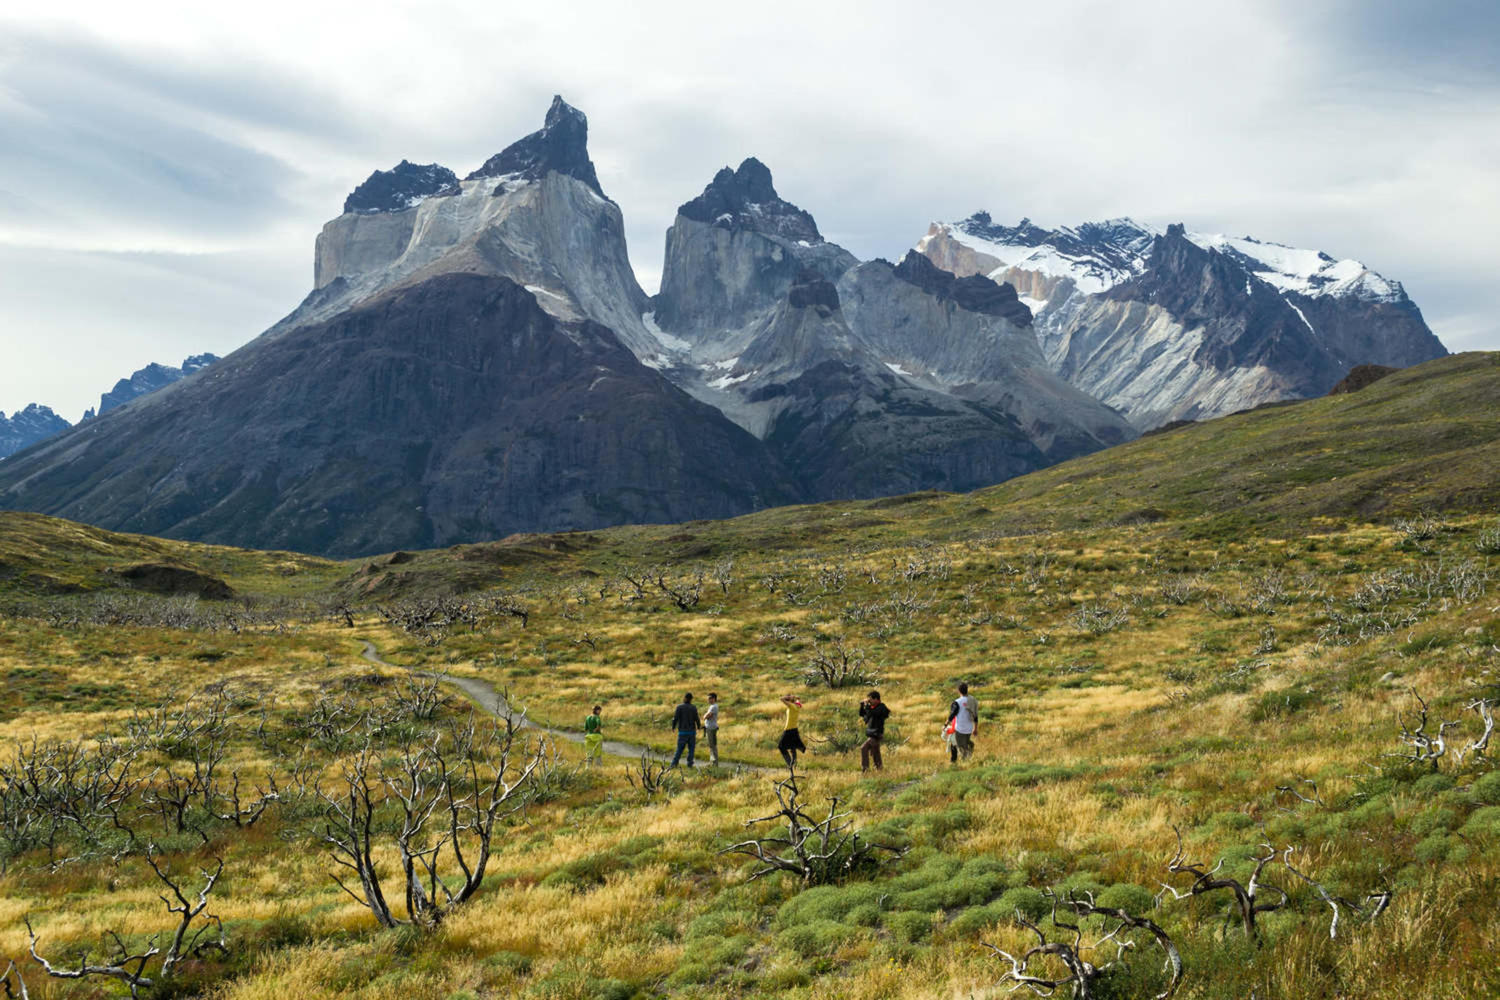 Hikers walking to Los Cuernos